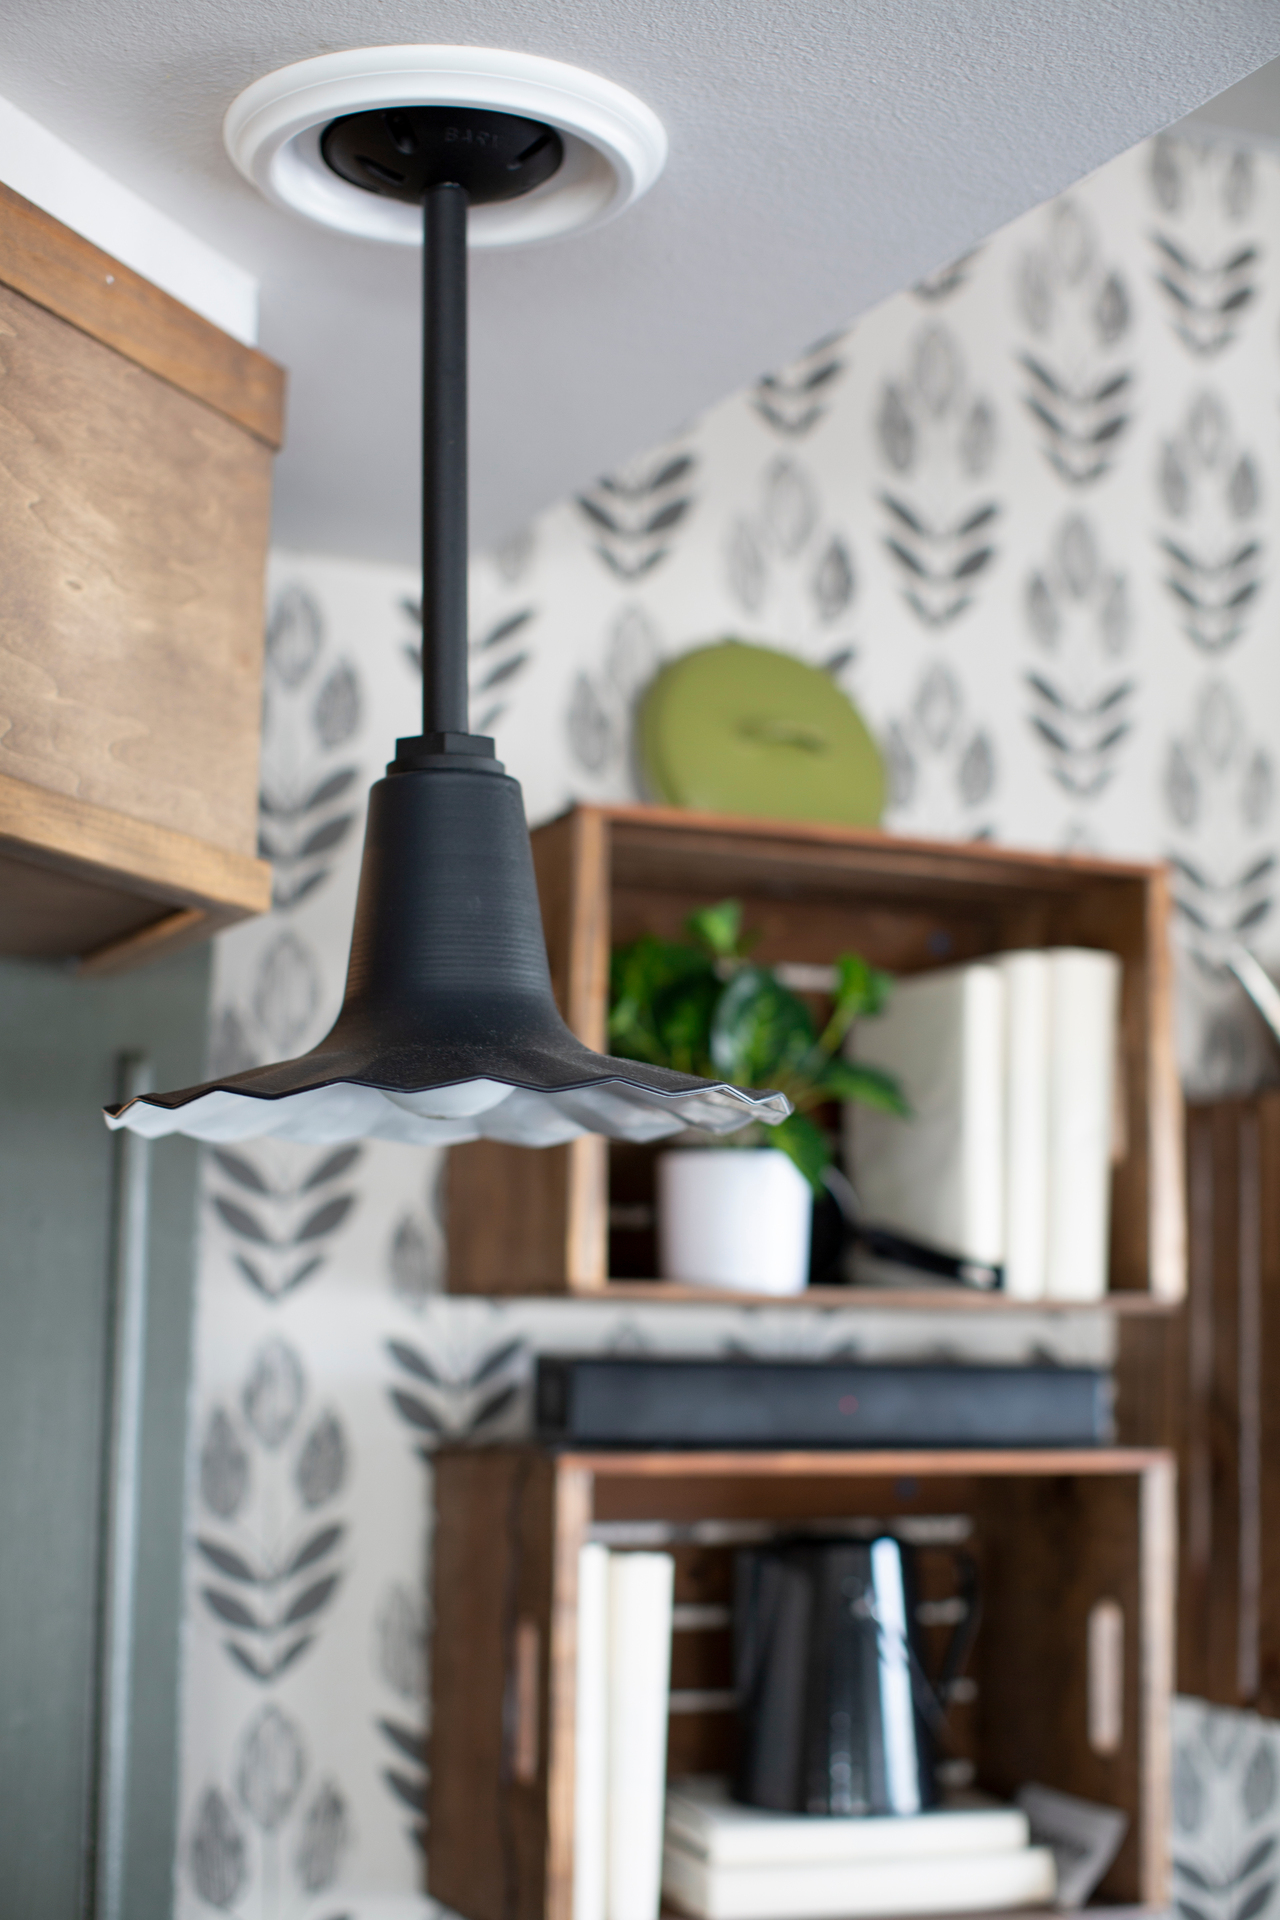 The Seaside Stem Mount Pendant Light is sturdy and durable, while the unique fluted shade adds a classic touch.